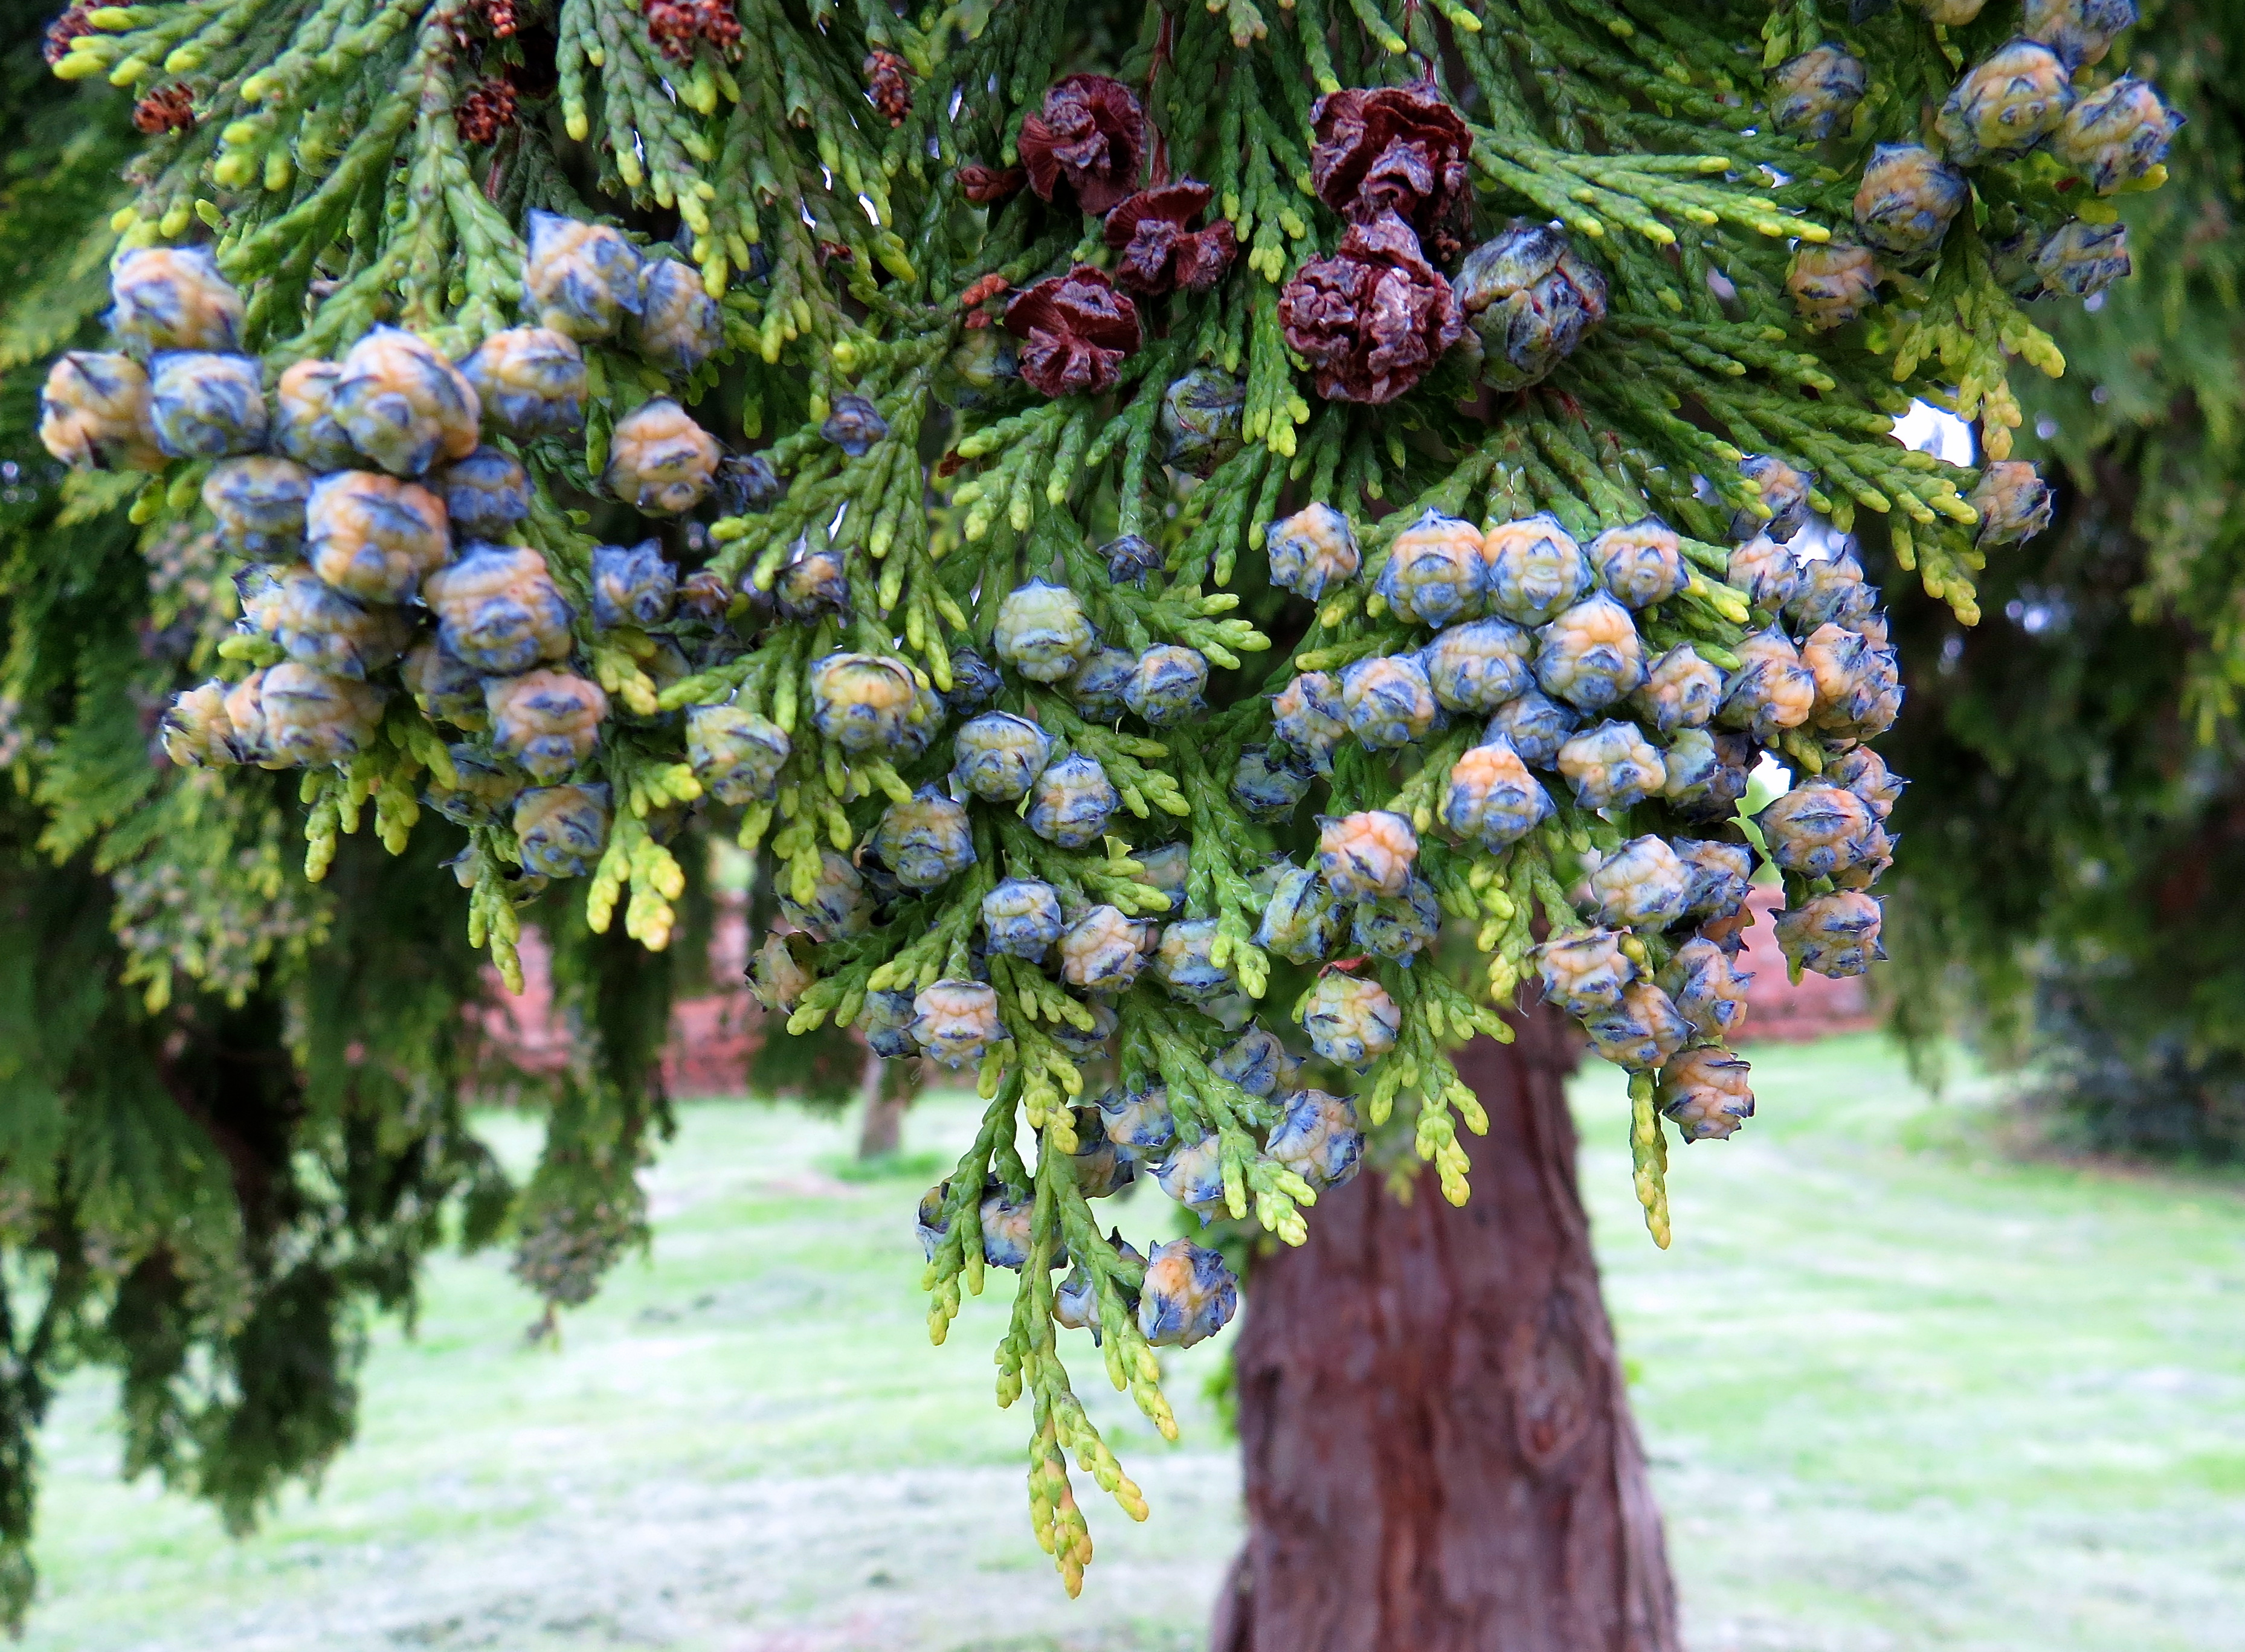 These will change colour and become pine cones (I think!).